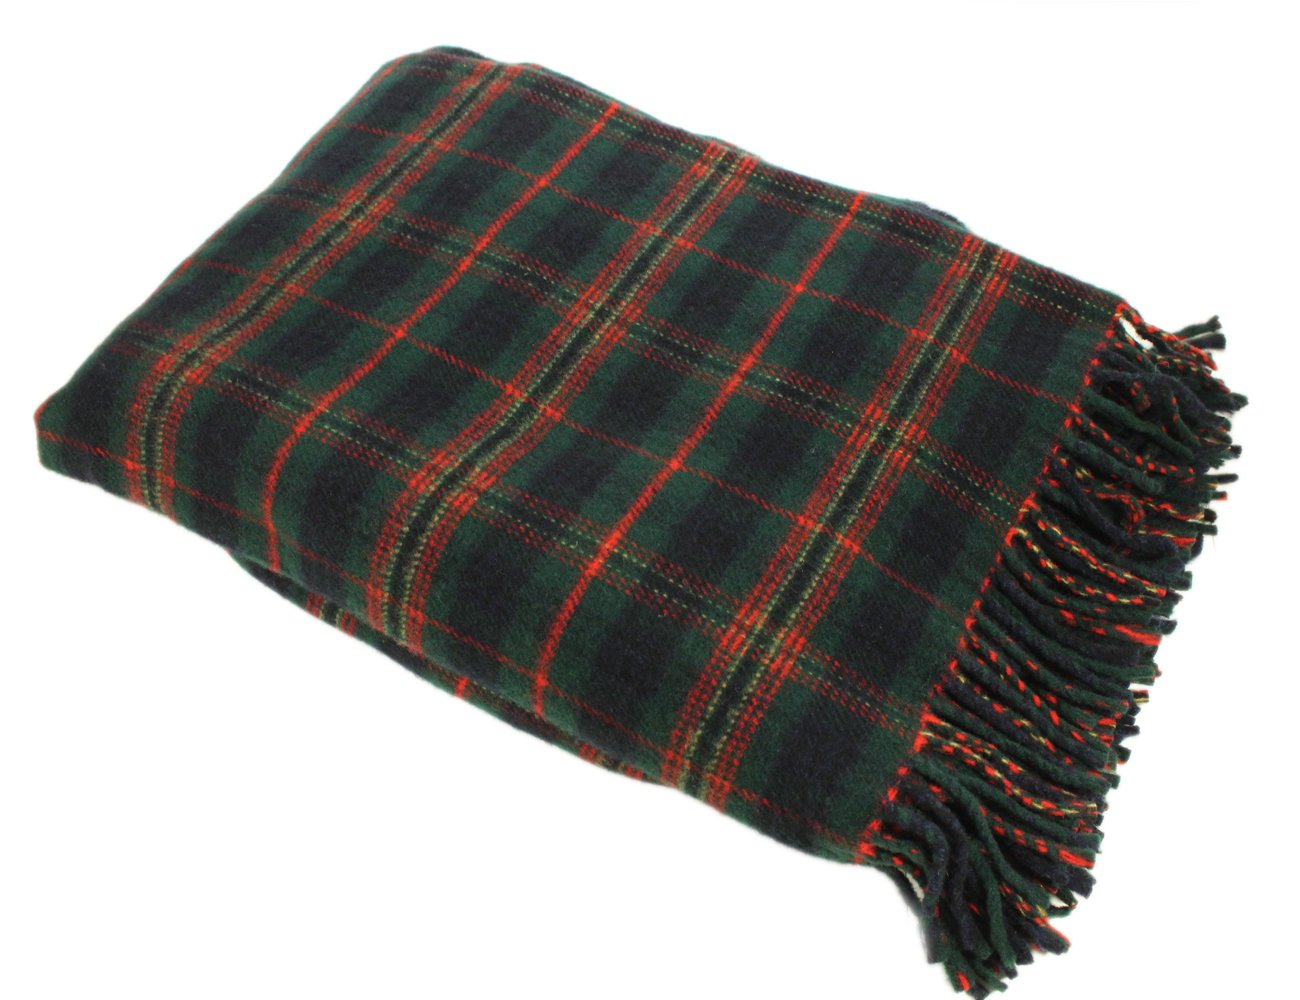 Kennedy Tartan Blanket 52'' x 70'' 100% Wool Irish Made by Kerry Woollen Mills